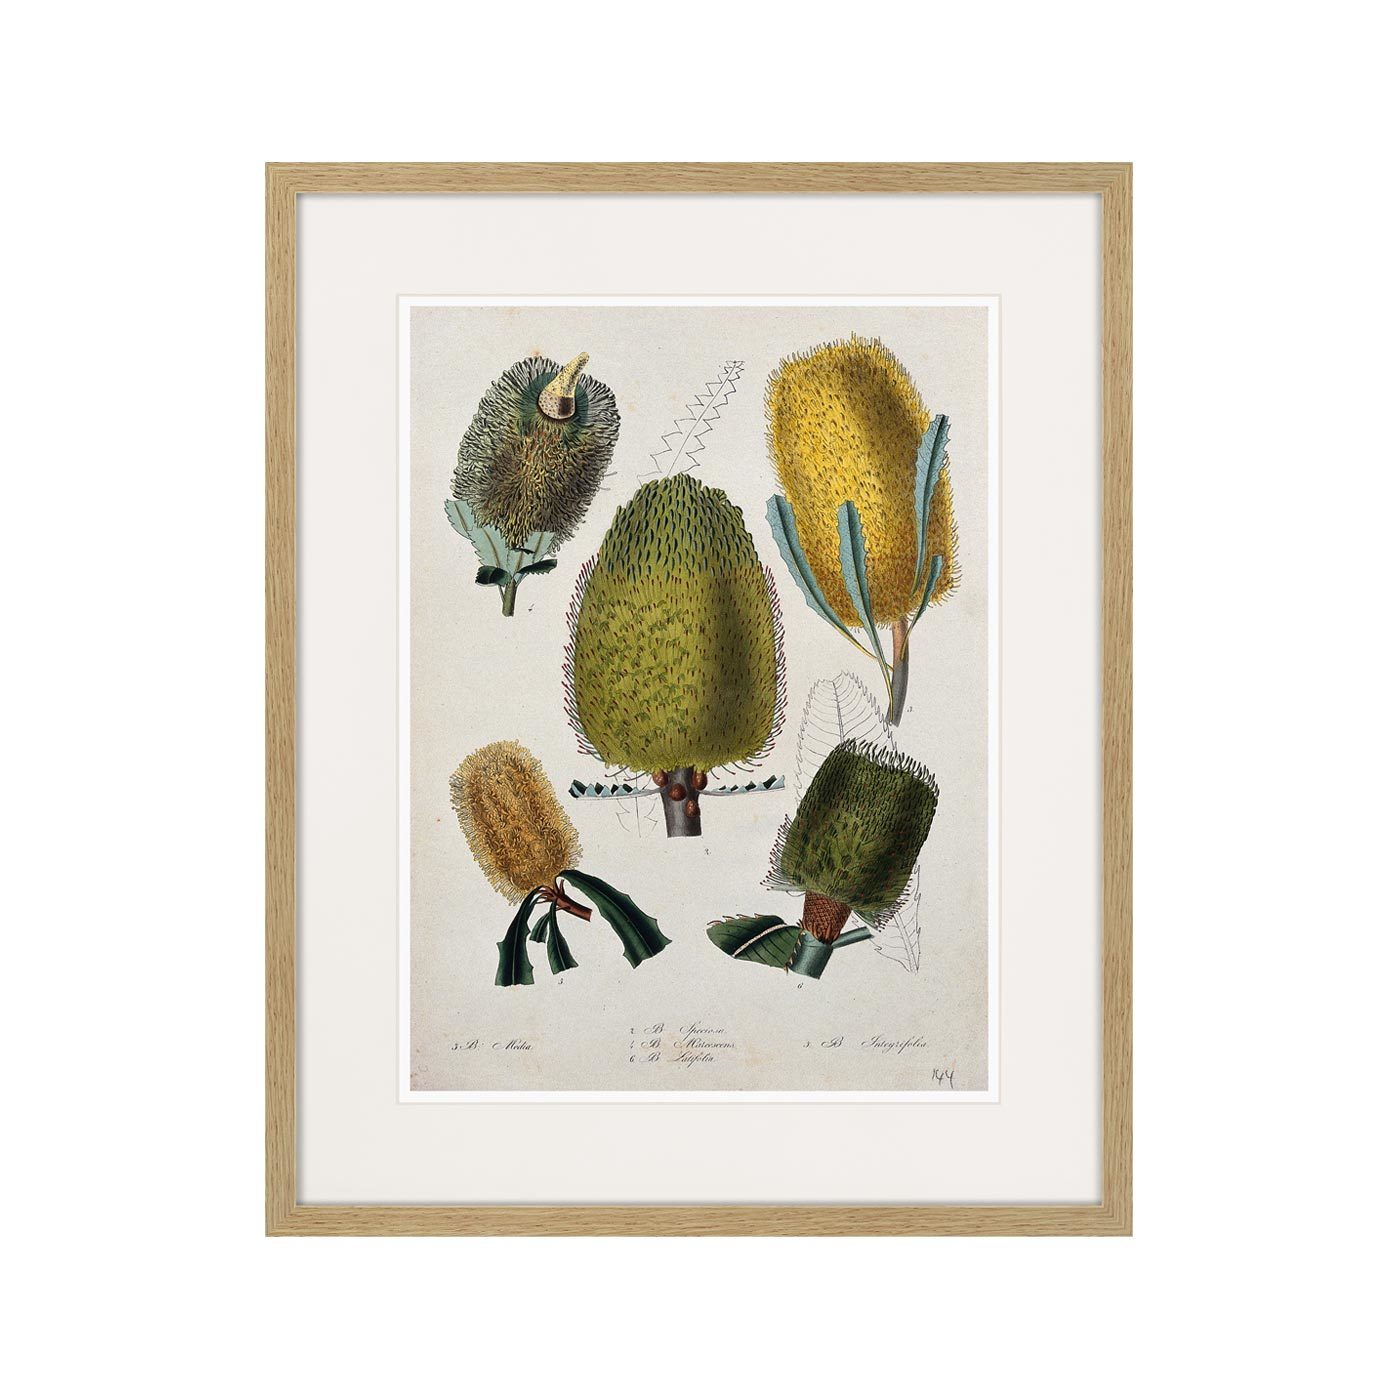 Exotic plants of the world №1, 1815г.